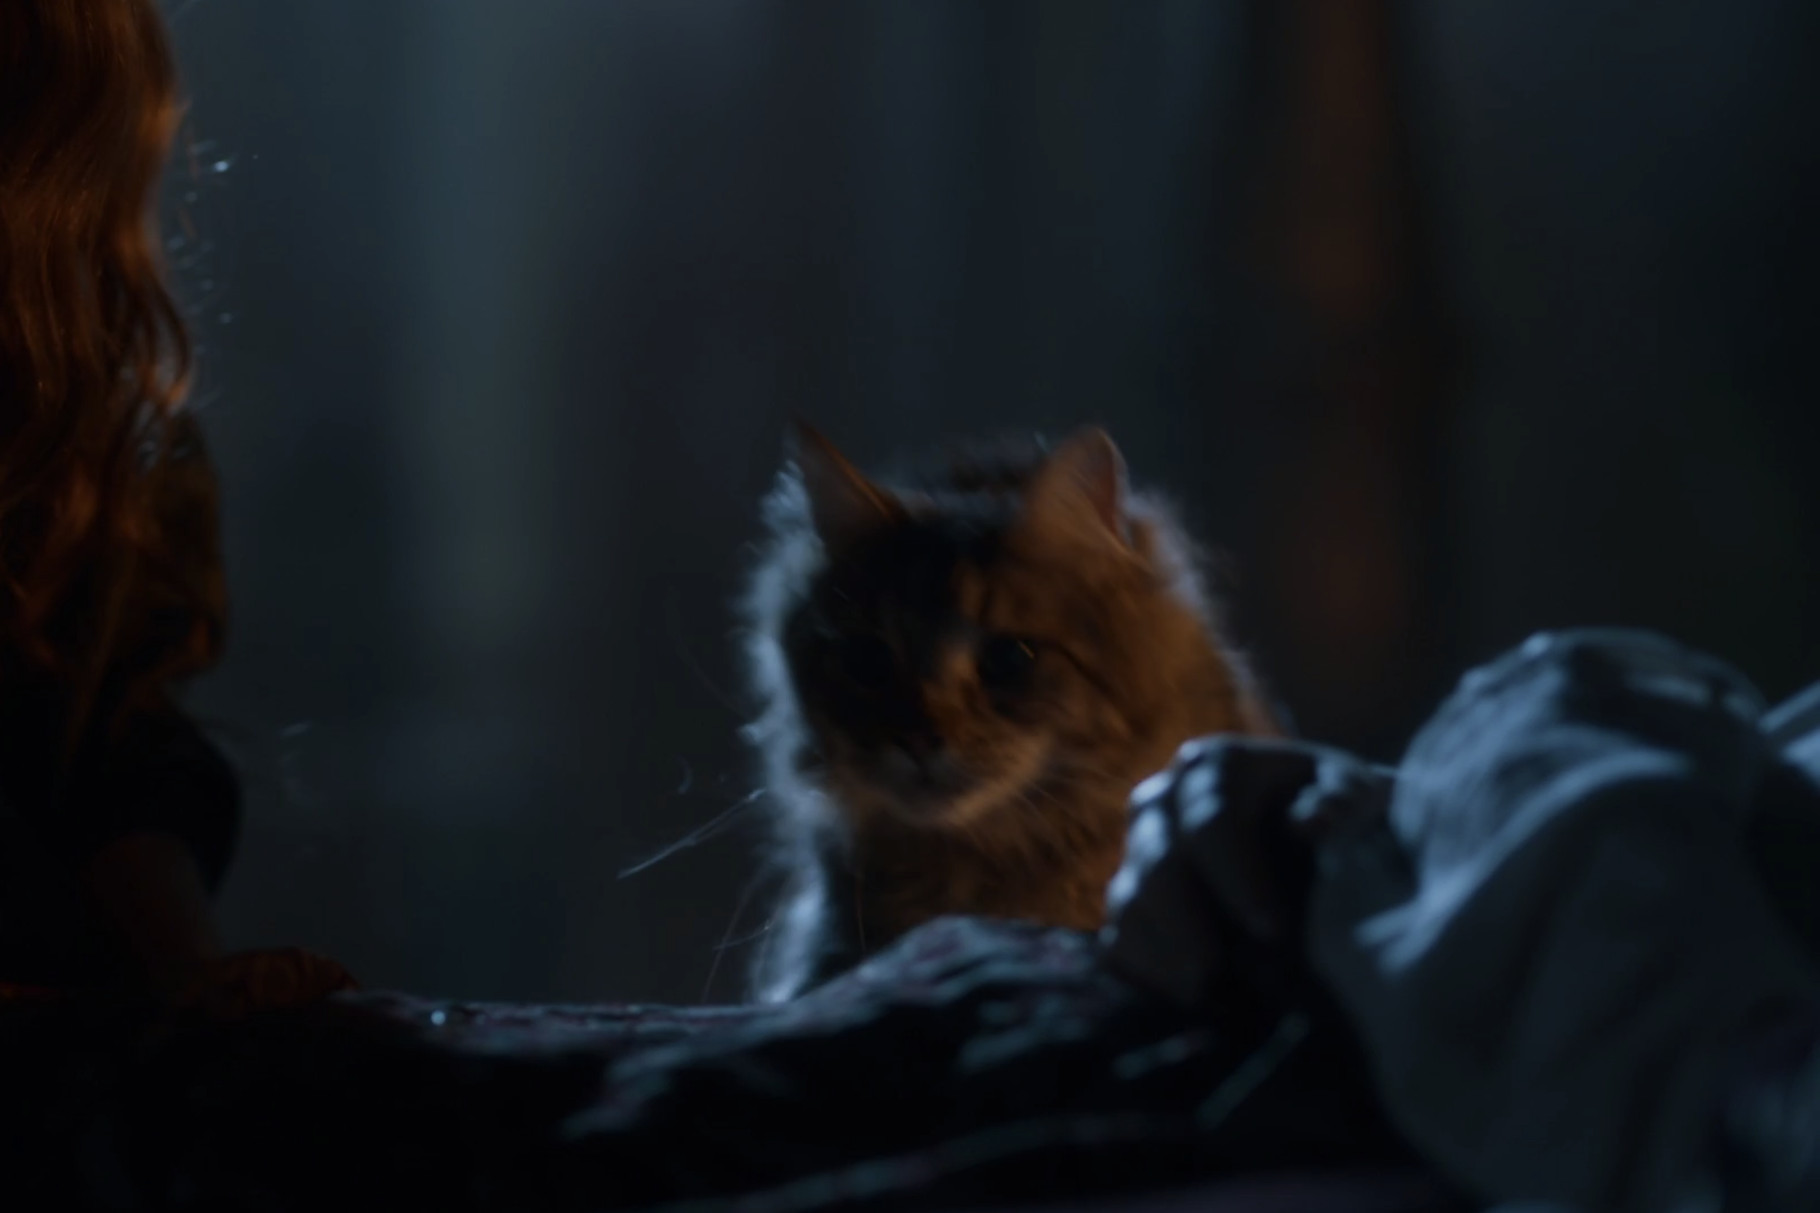 The Death of Ser Pounce